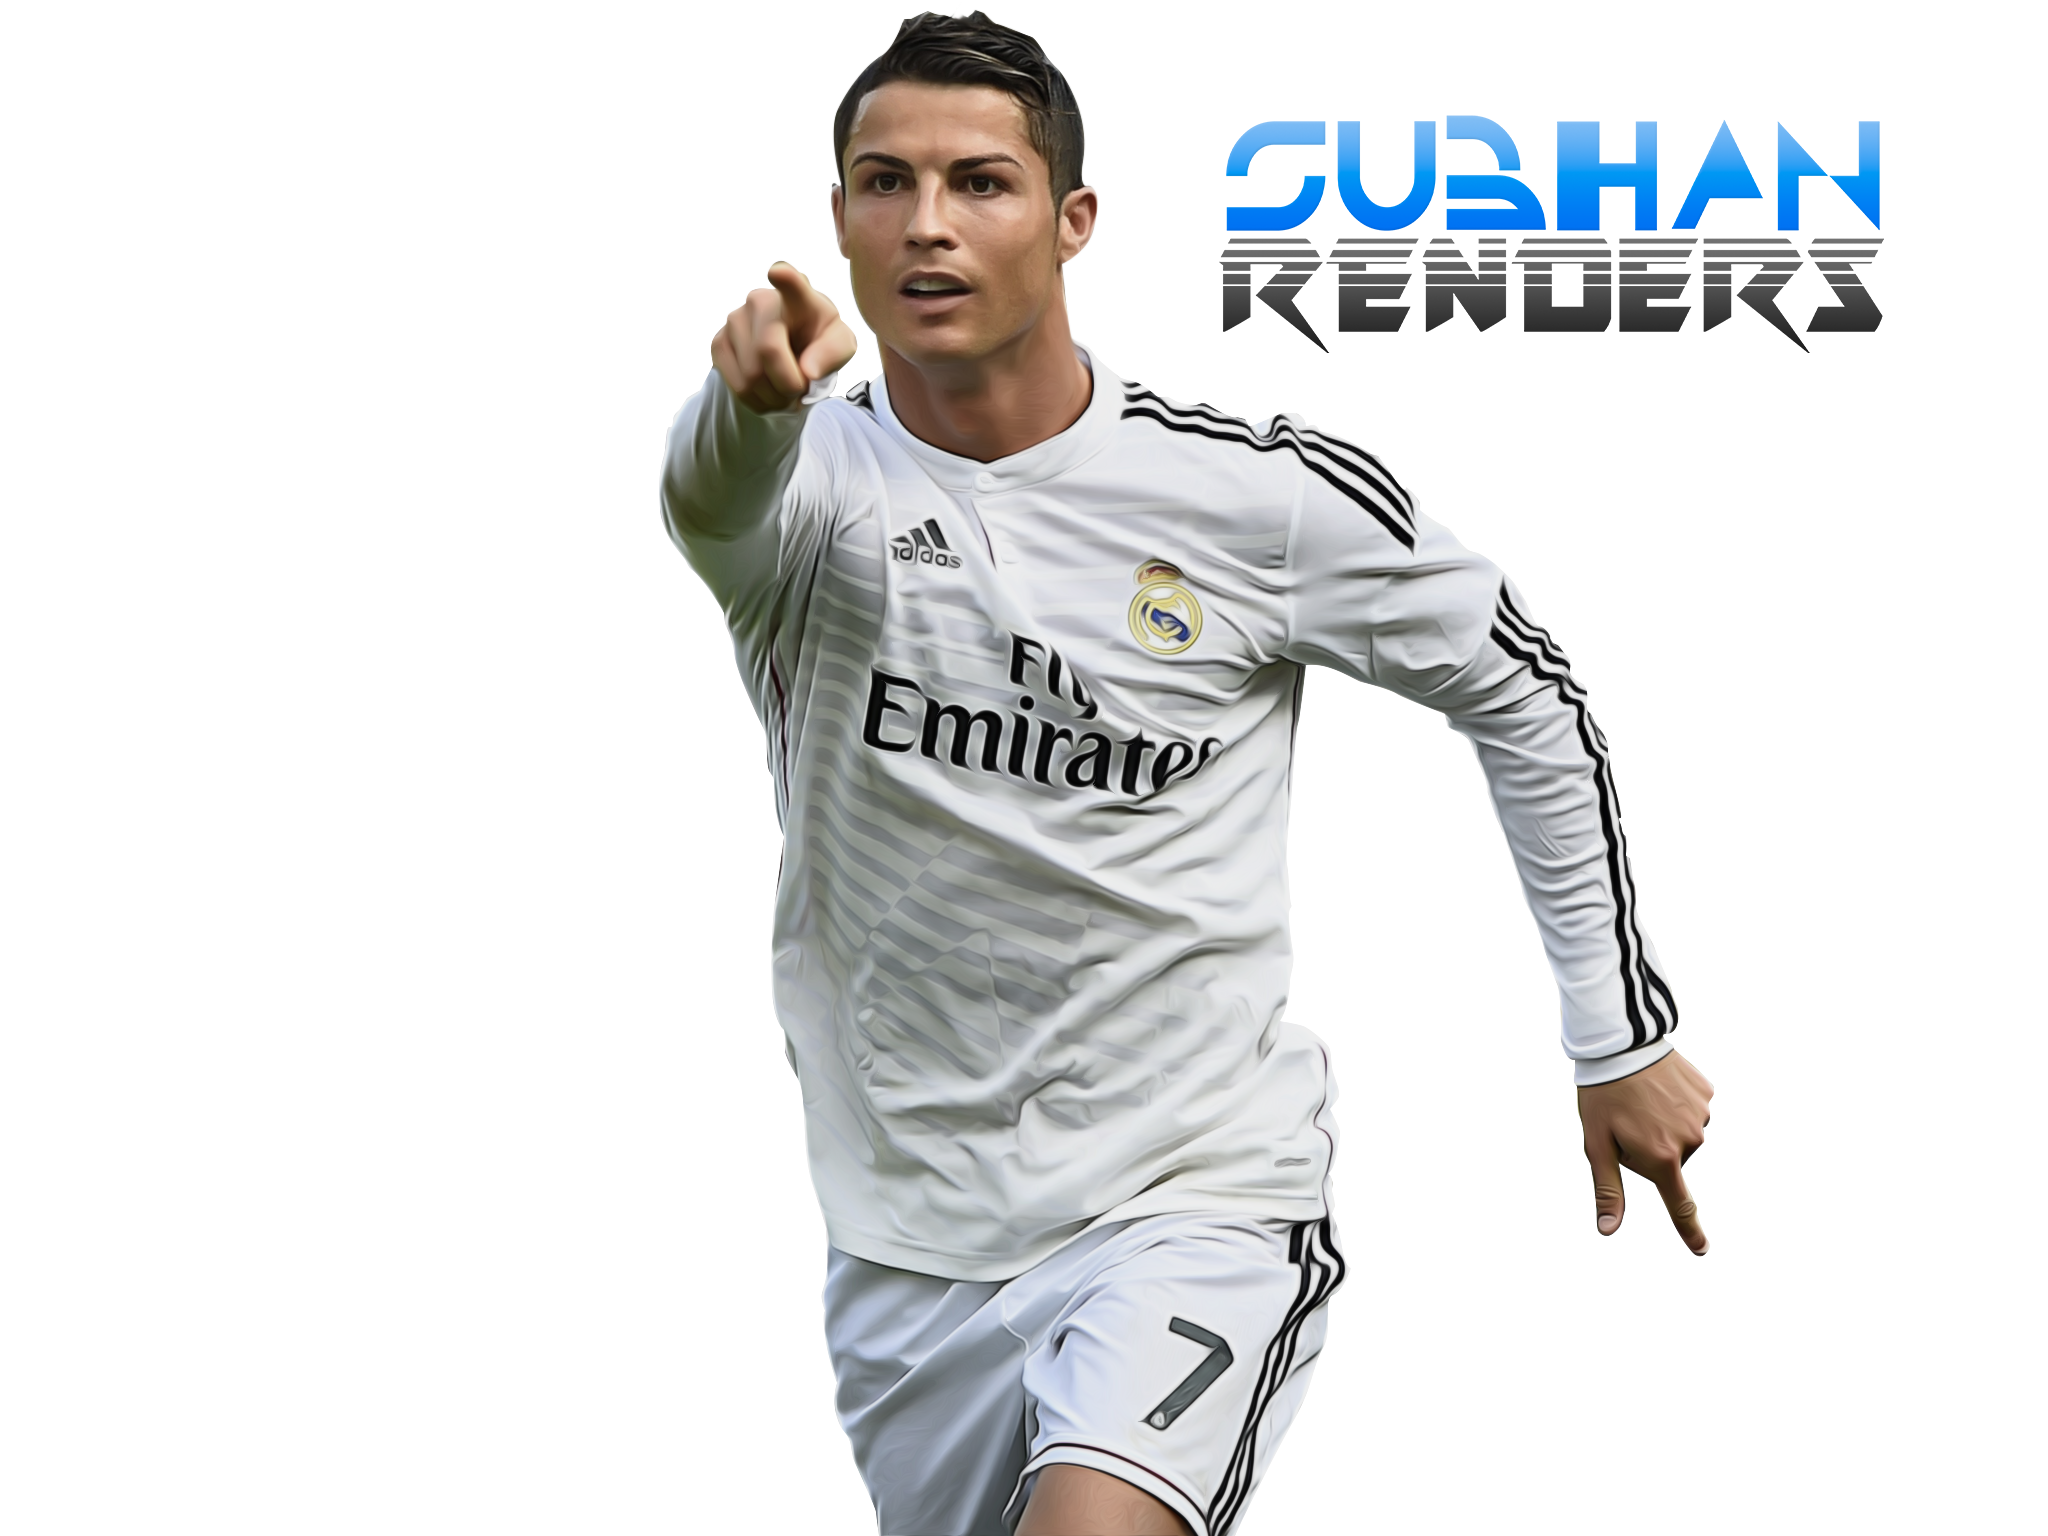 cristiano ronaldo png free download png mart sports